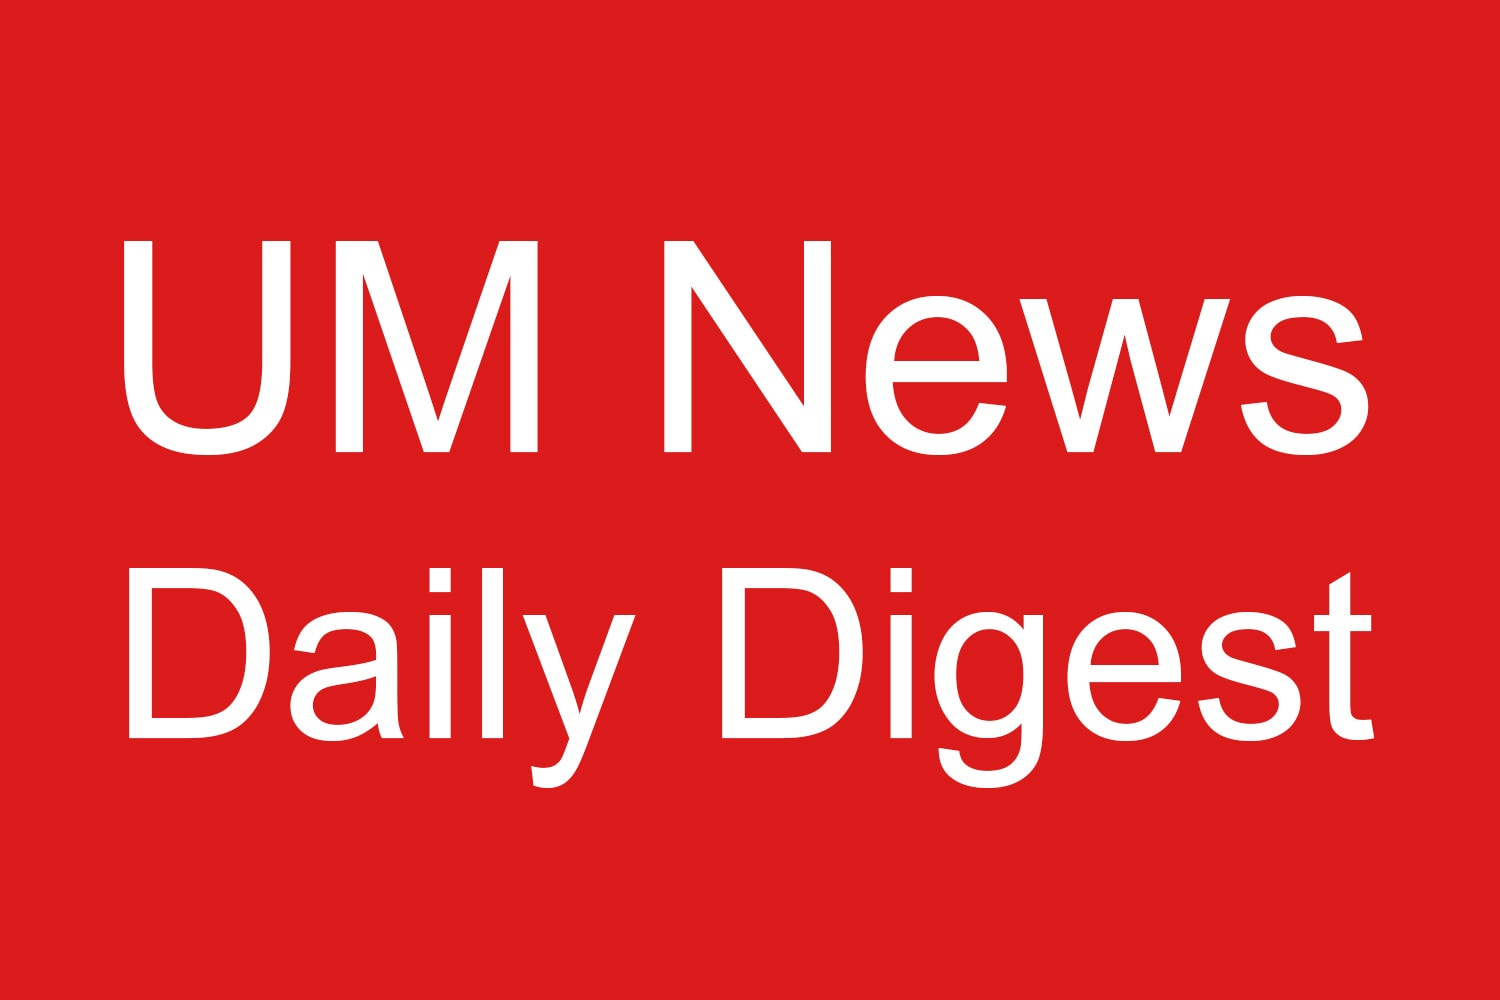 UM News Daily Digest is a service of United Methodist News and United Methodist Communications.